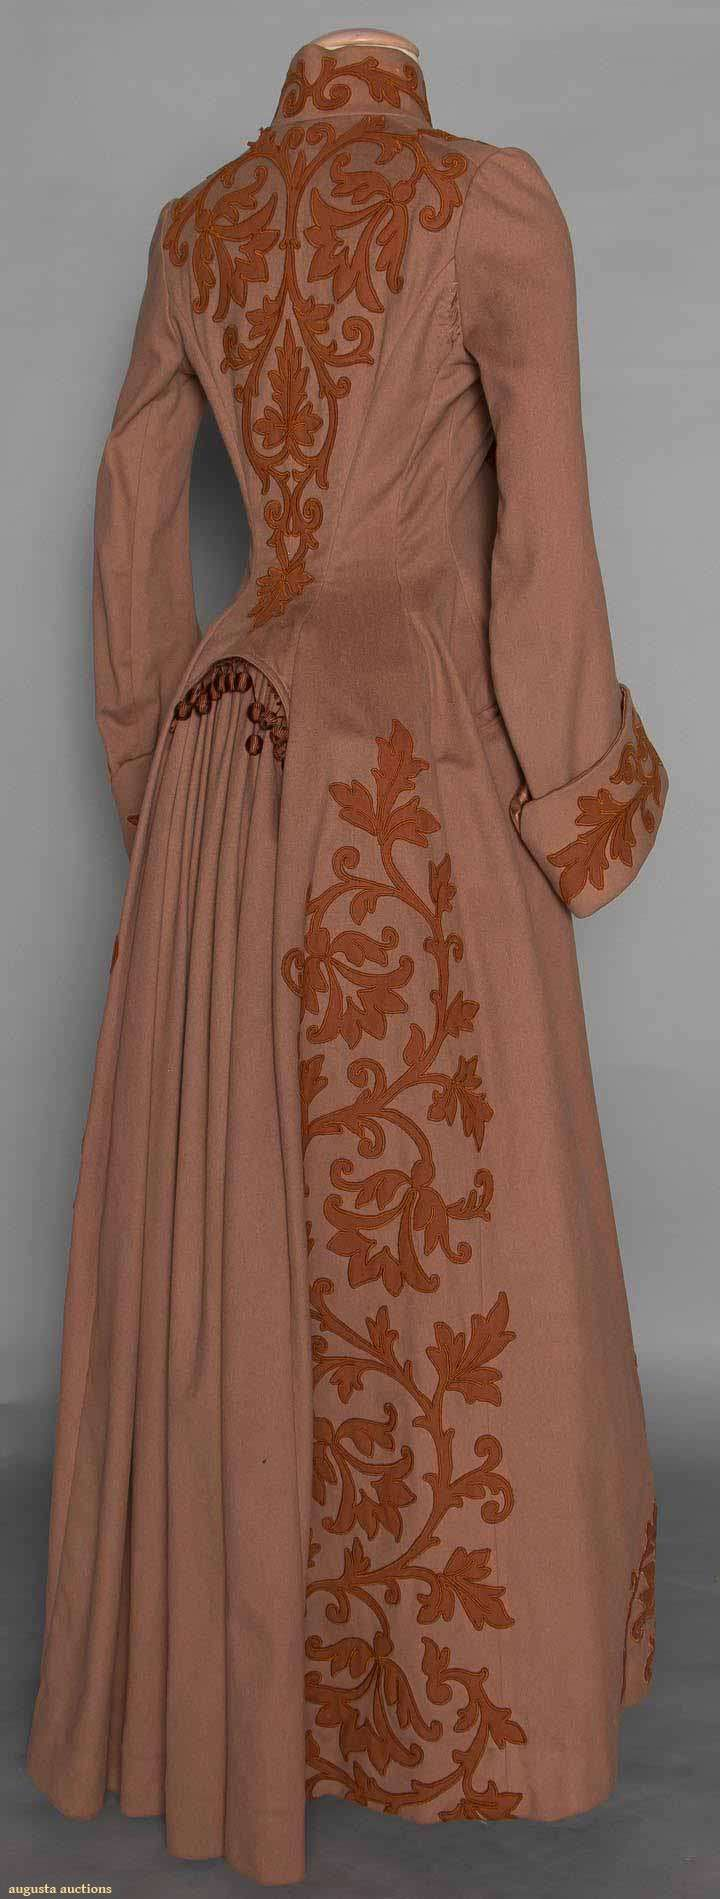 APPLIQUED WOOL BUSTLE COAT, c. 1888 | Cocoa brown, chestnut wool leaf & scroll appliques, high band collar, long fitted sleeves widen to deep cuffs, back fitted w/ gathered panel for bustle trimmed in baubles